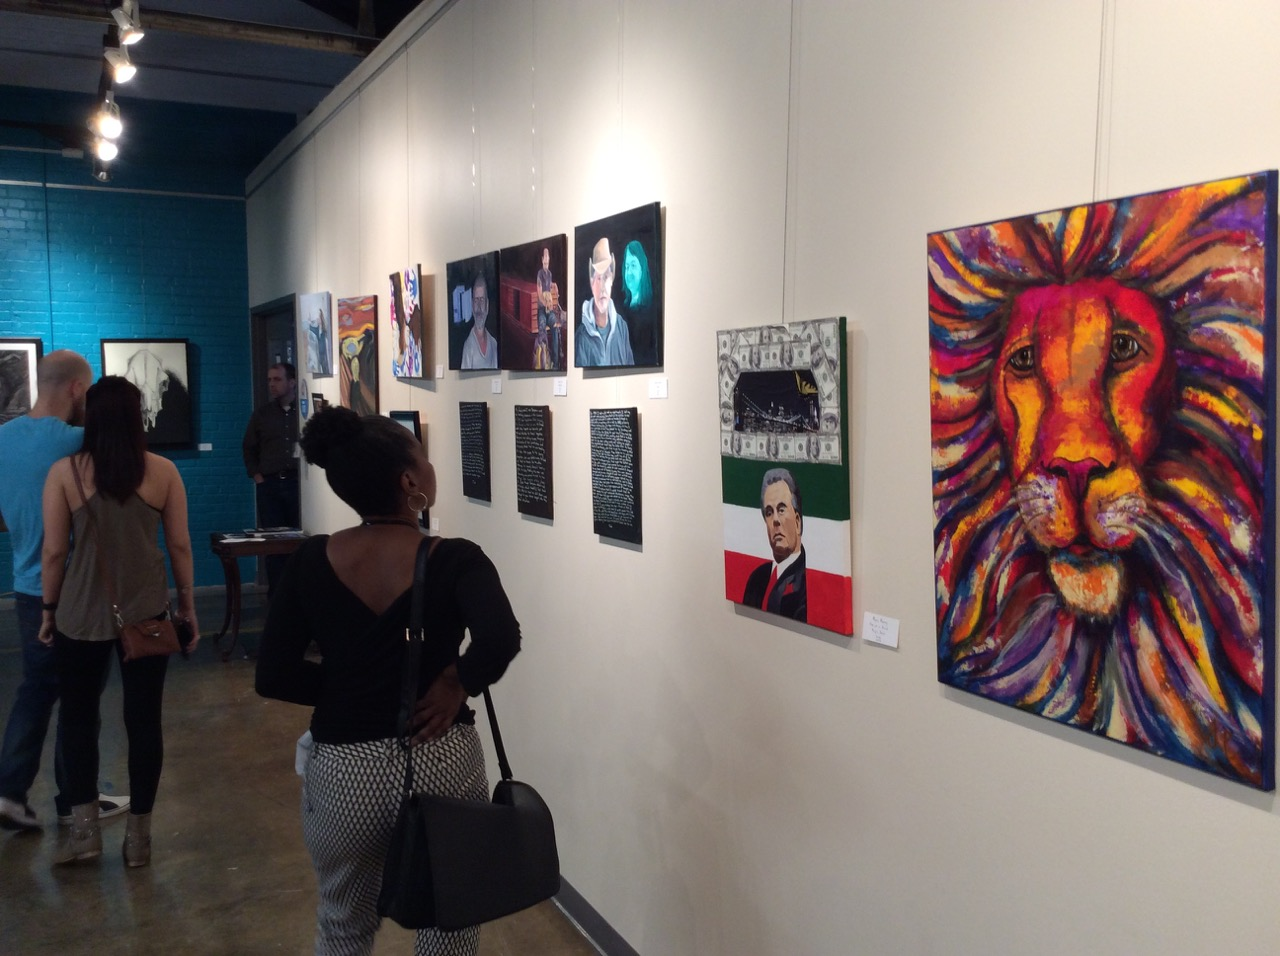 Guests peruse the Student Artworks at the 2016 Student Show at ClearWater